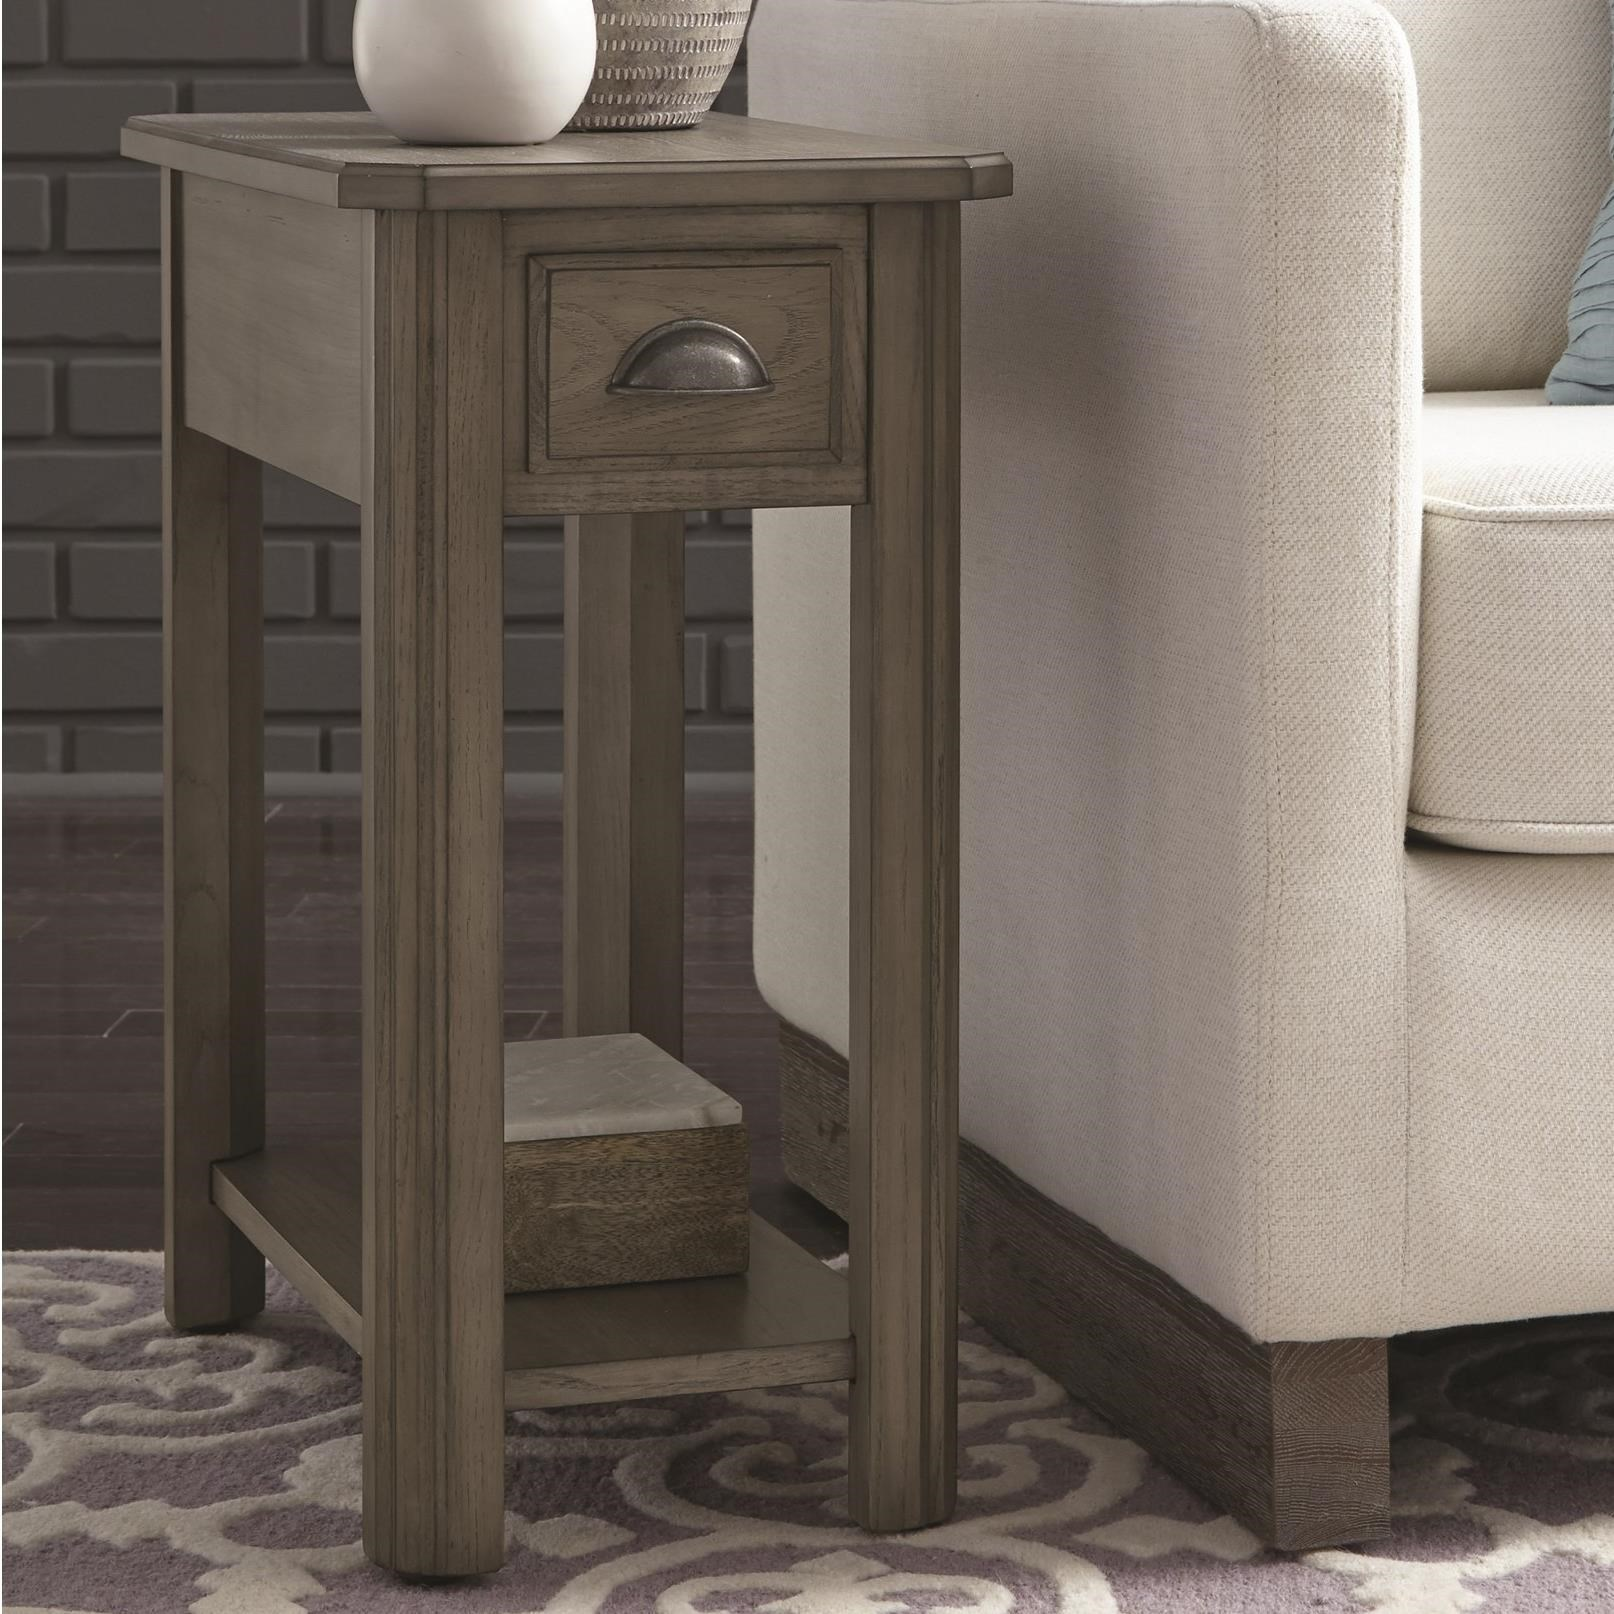 2114 Chairside End Table by Null Furniture at Westrich Furniture & Appliances